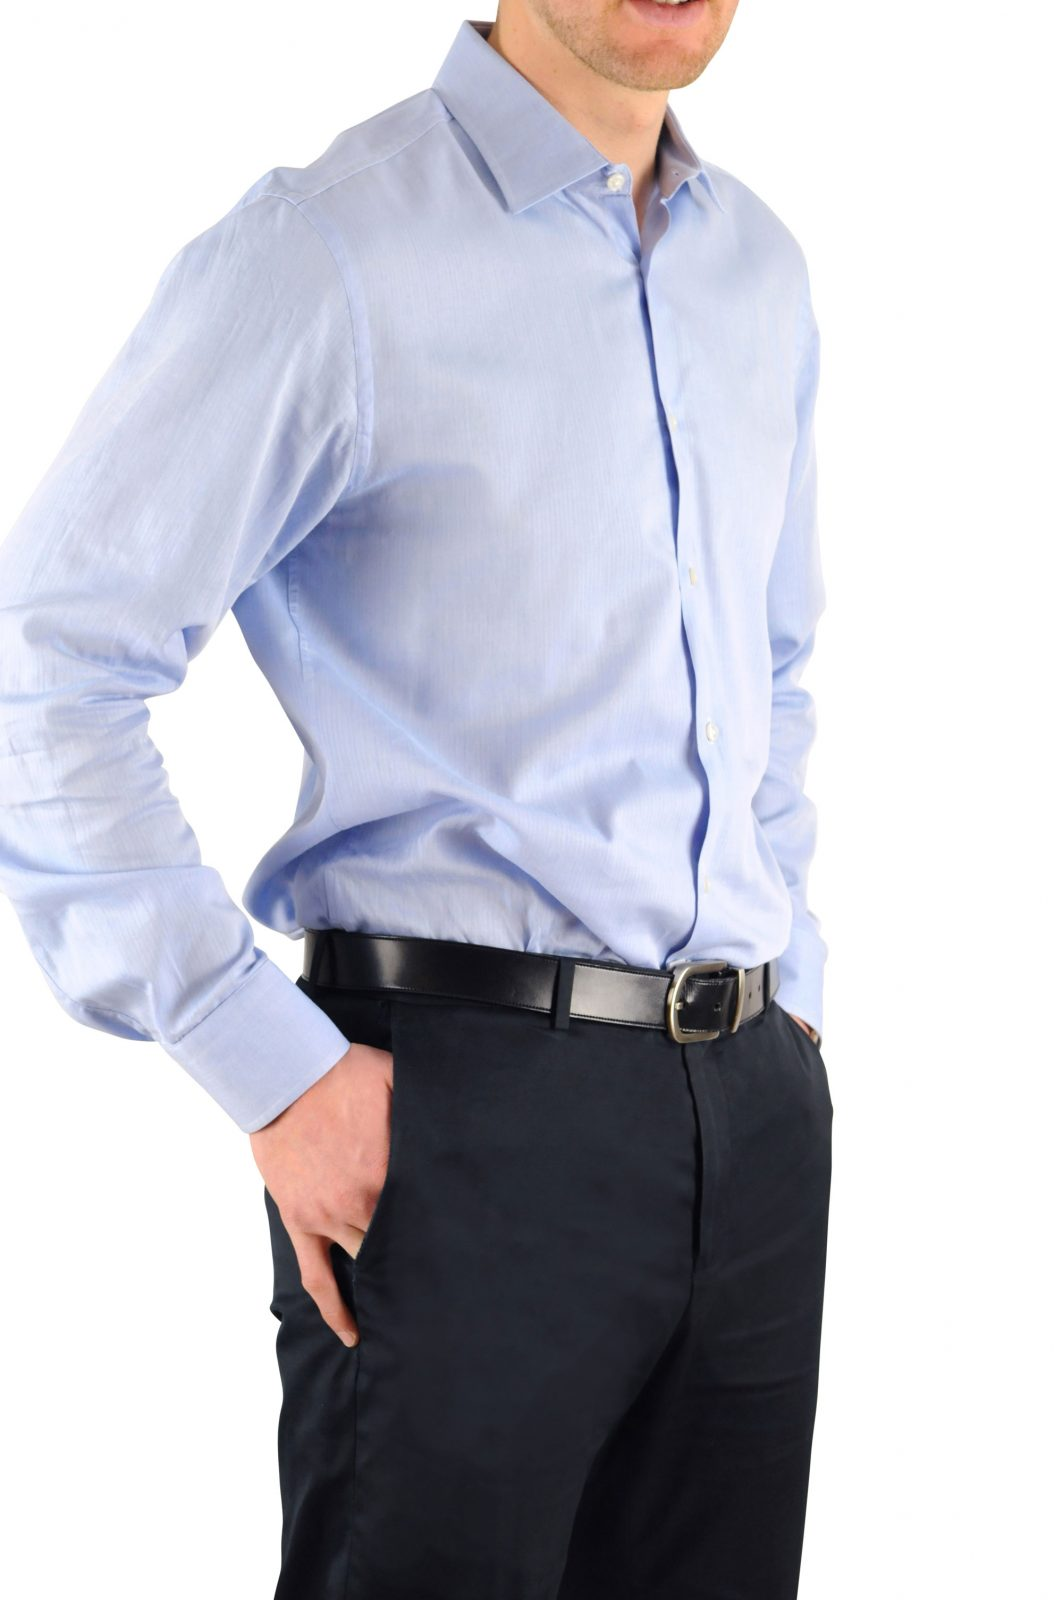 Man in a wrinkled dress shirt not nicely tucked into pants